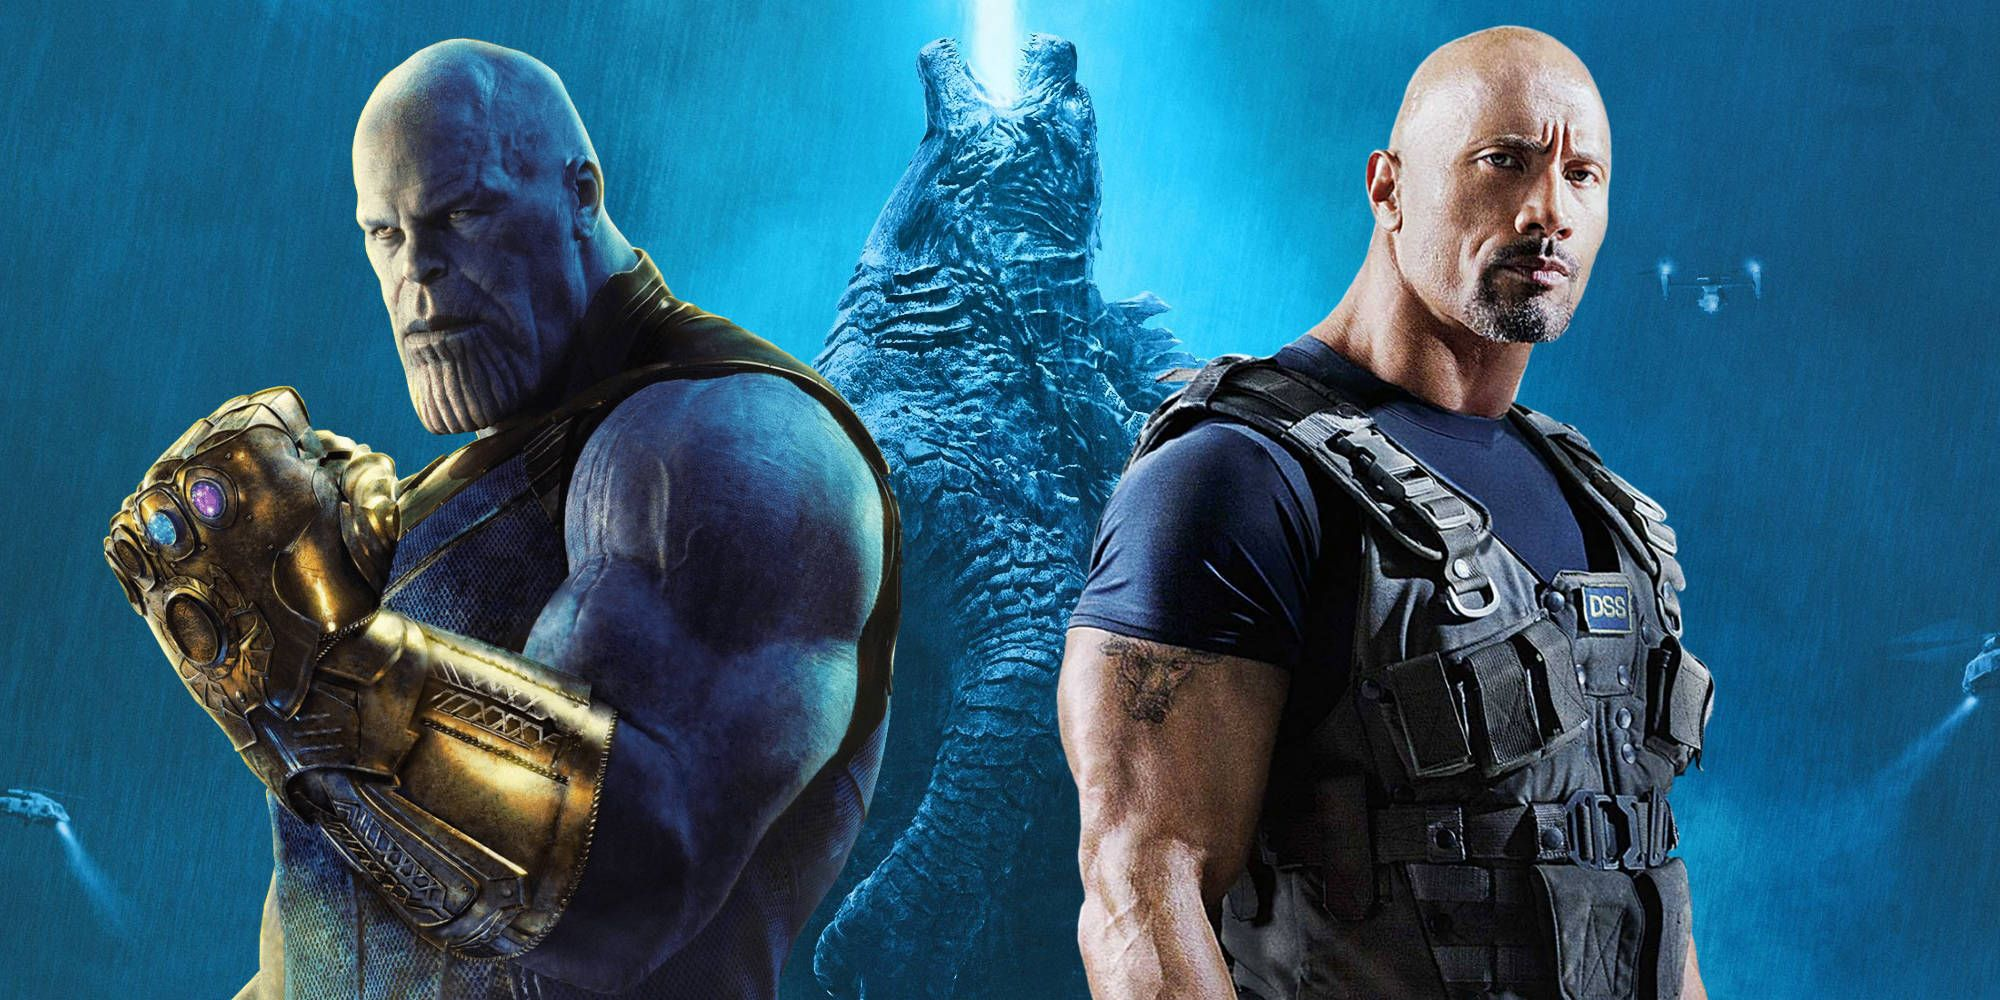 Epic Summer 2019 Movie Montage Celebrates The Year's